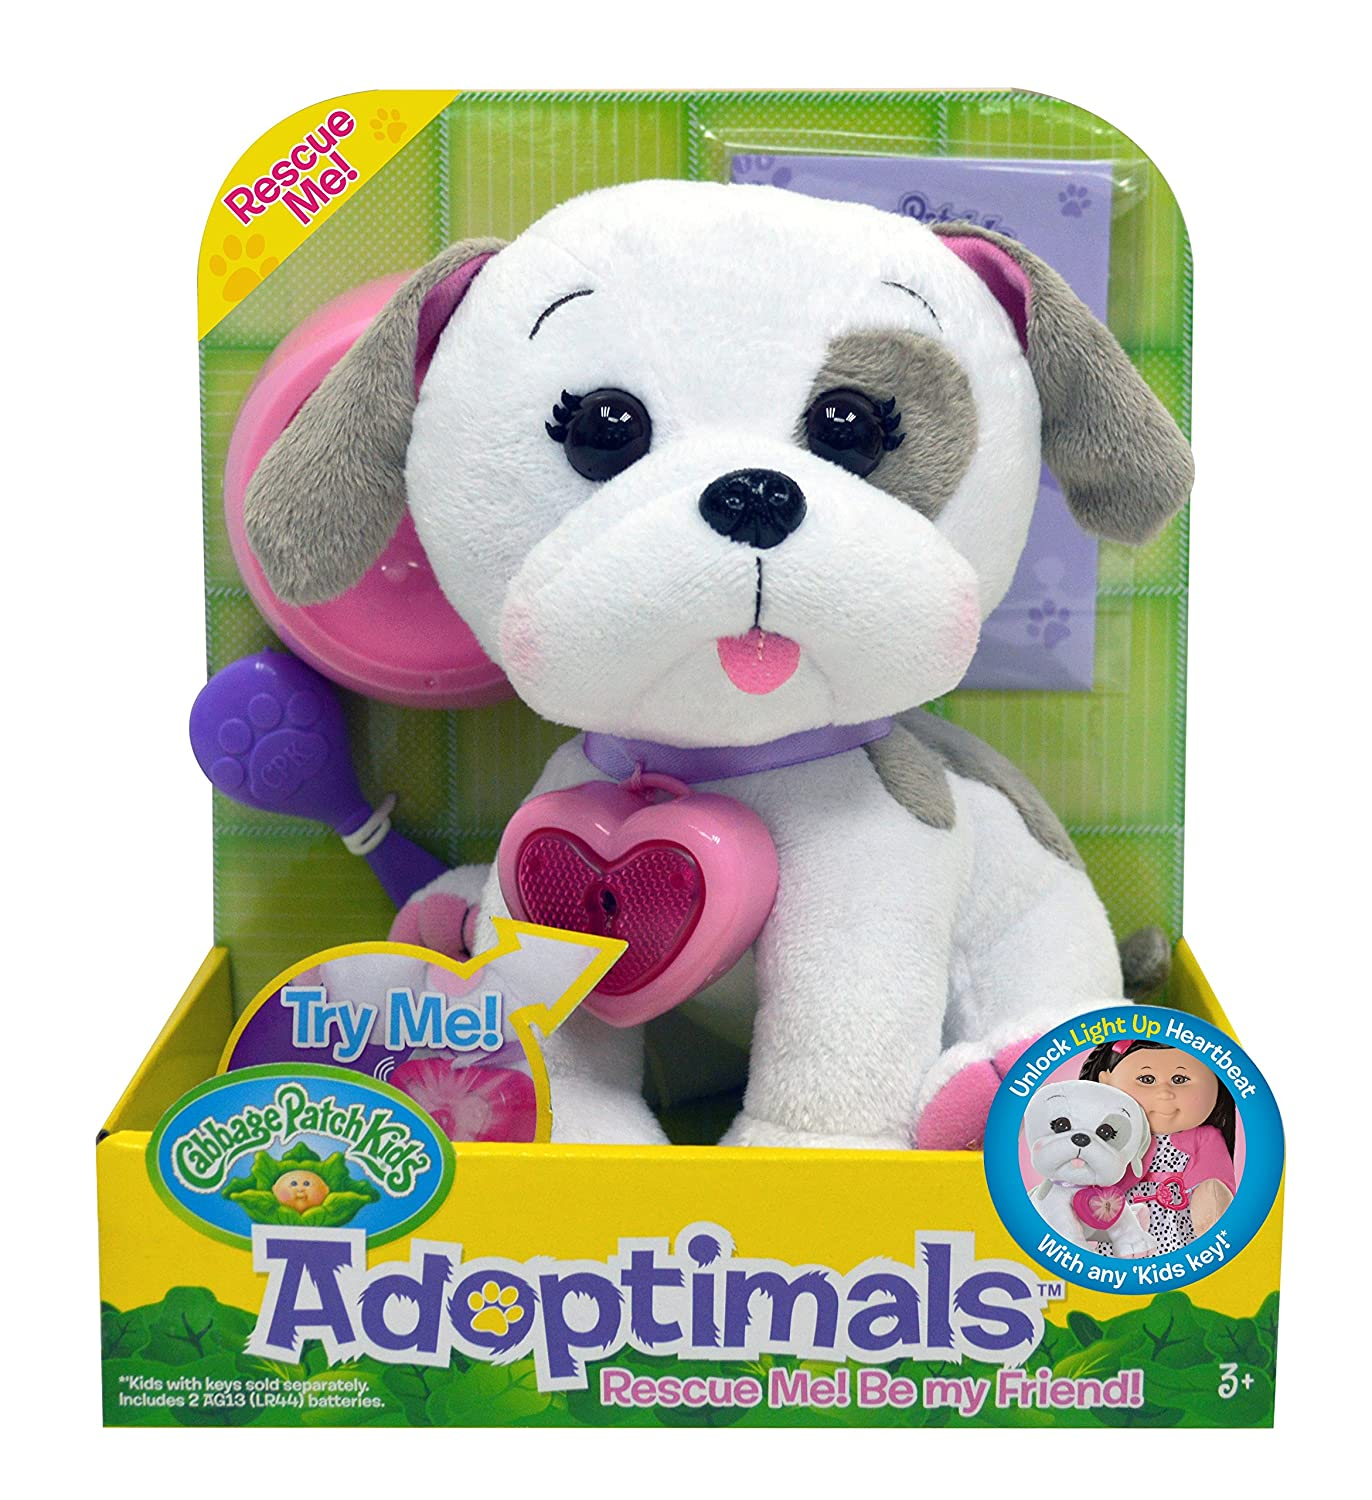 Amazon Cabbage Patch Kids Adoptimals Bulldog Toys & Games